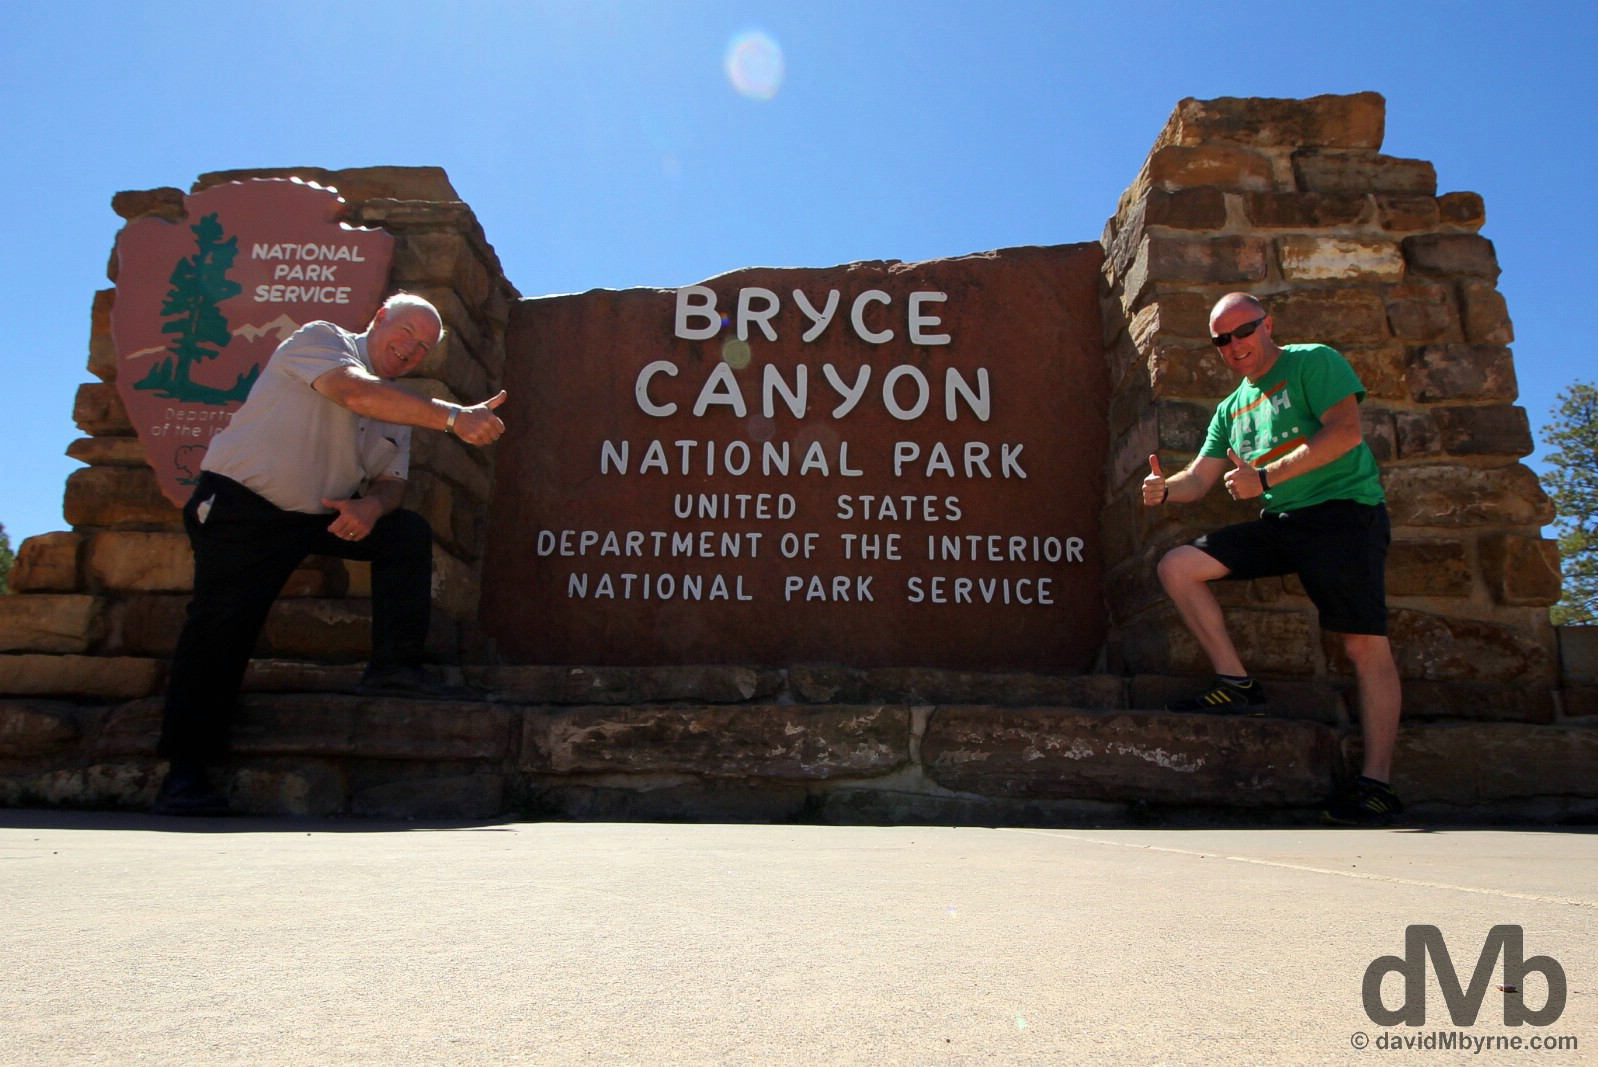 At the entrance to Bryce Canyon National Park, southern Utah, USA. September 8, 2016.